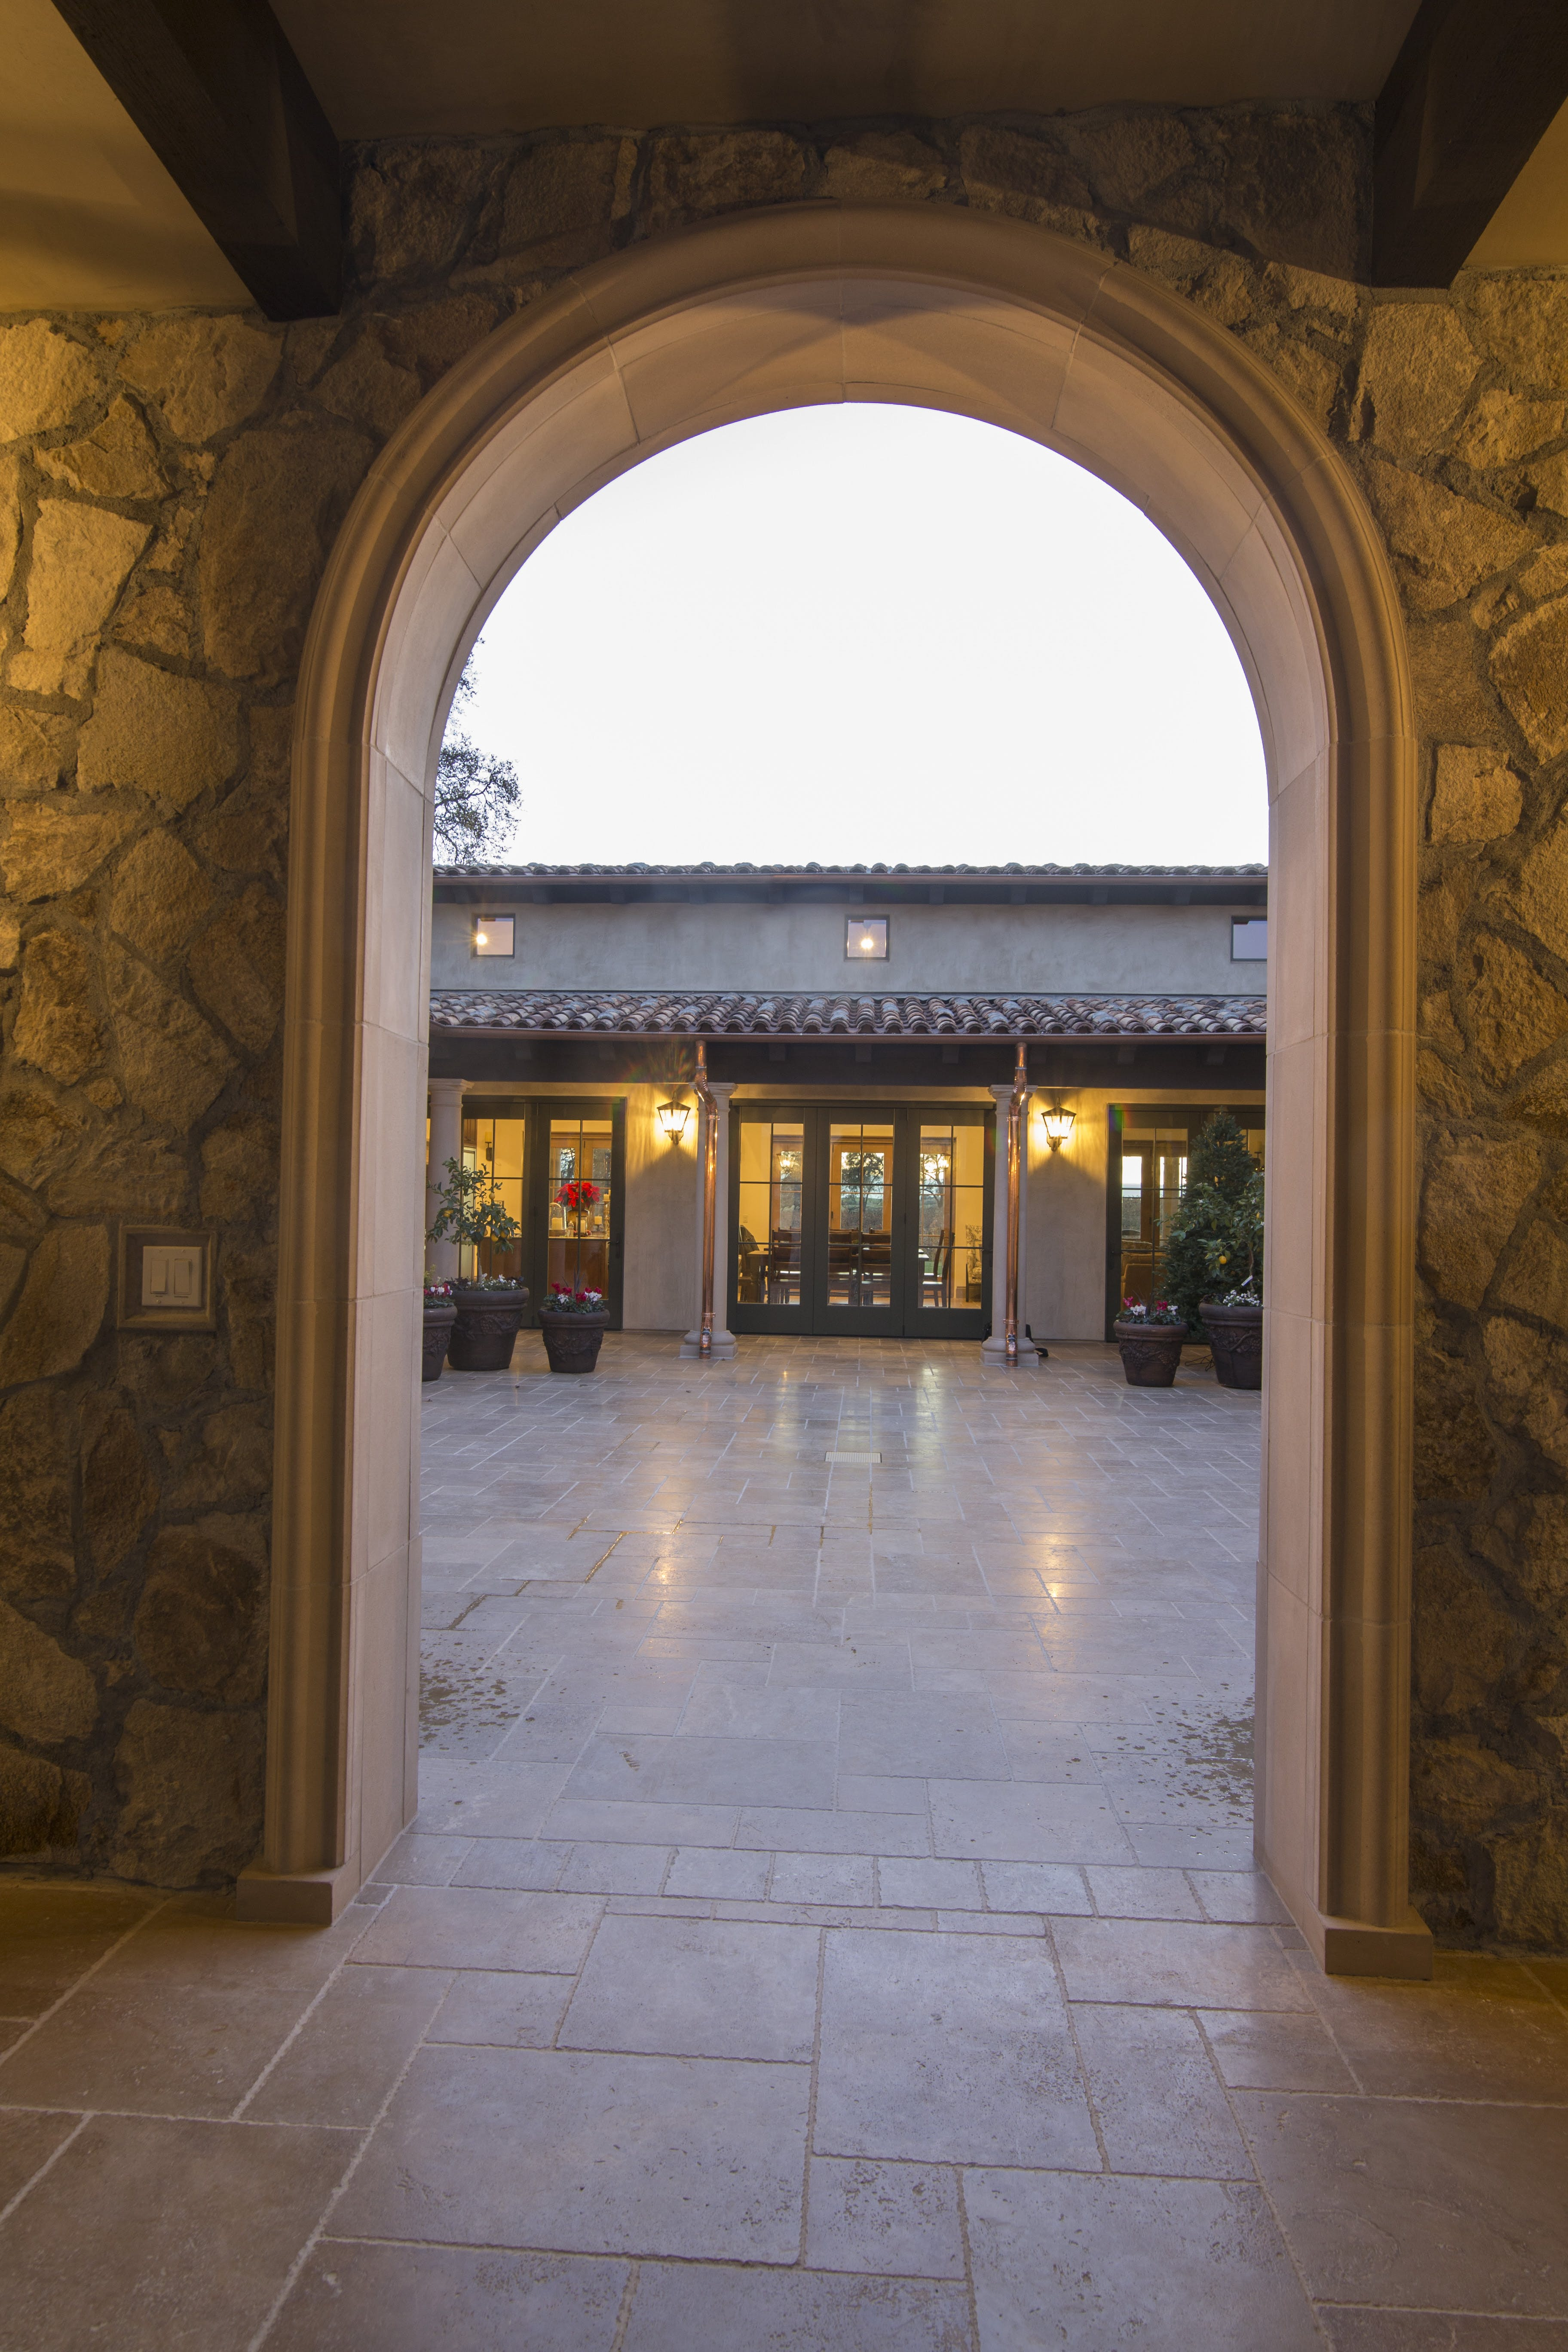 Arch entrance to Courtyard